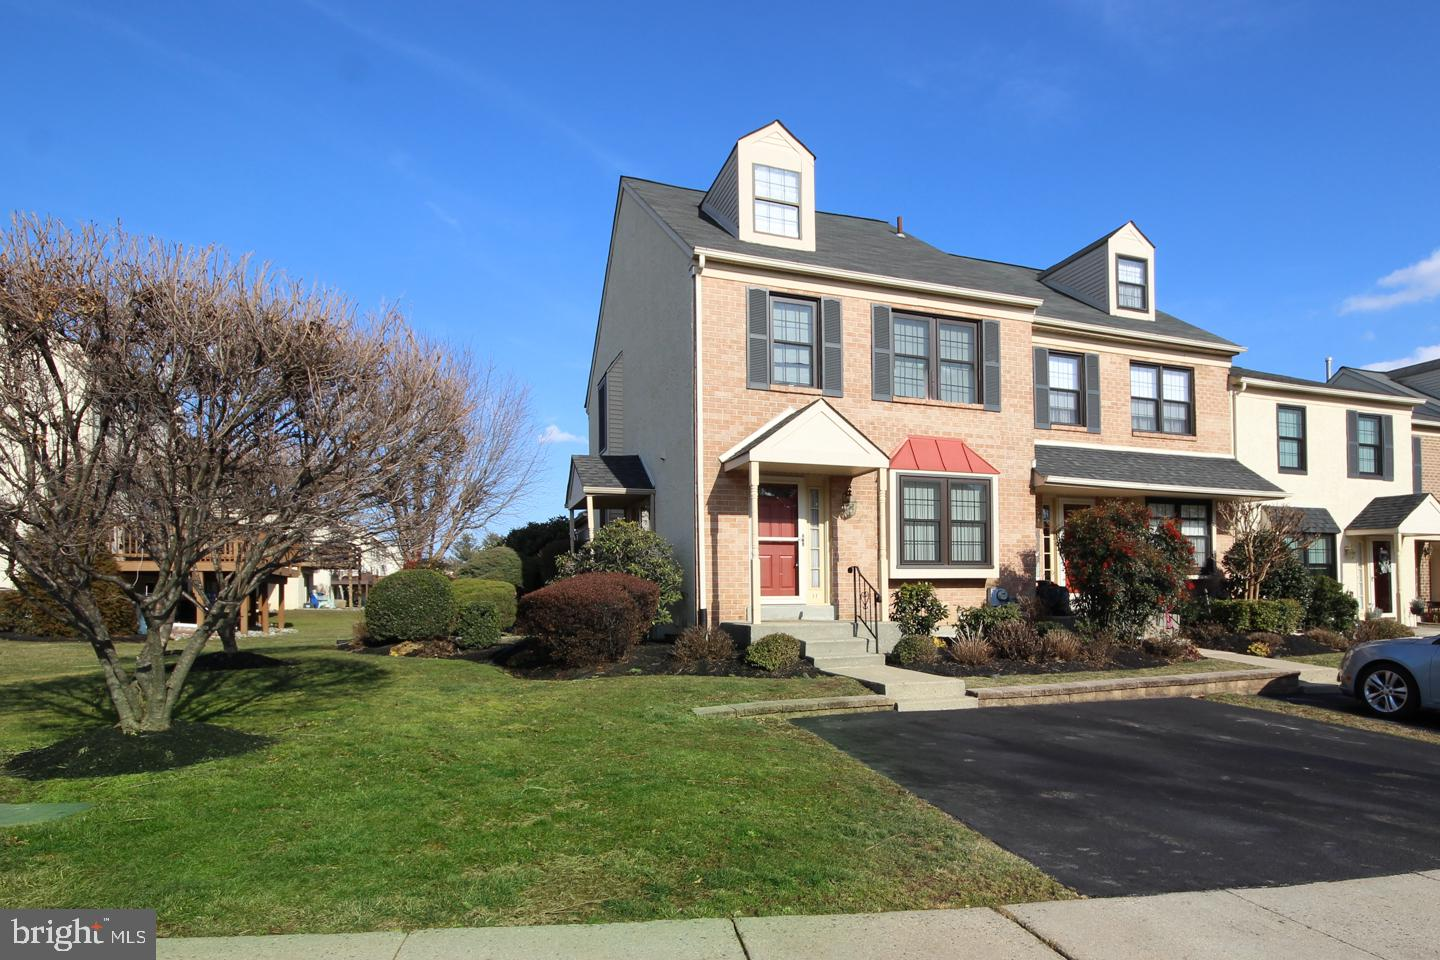 11 RUTH ROAD, BROOKHAVEN, PA 19015